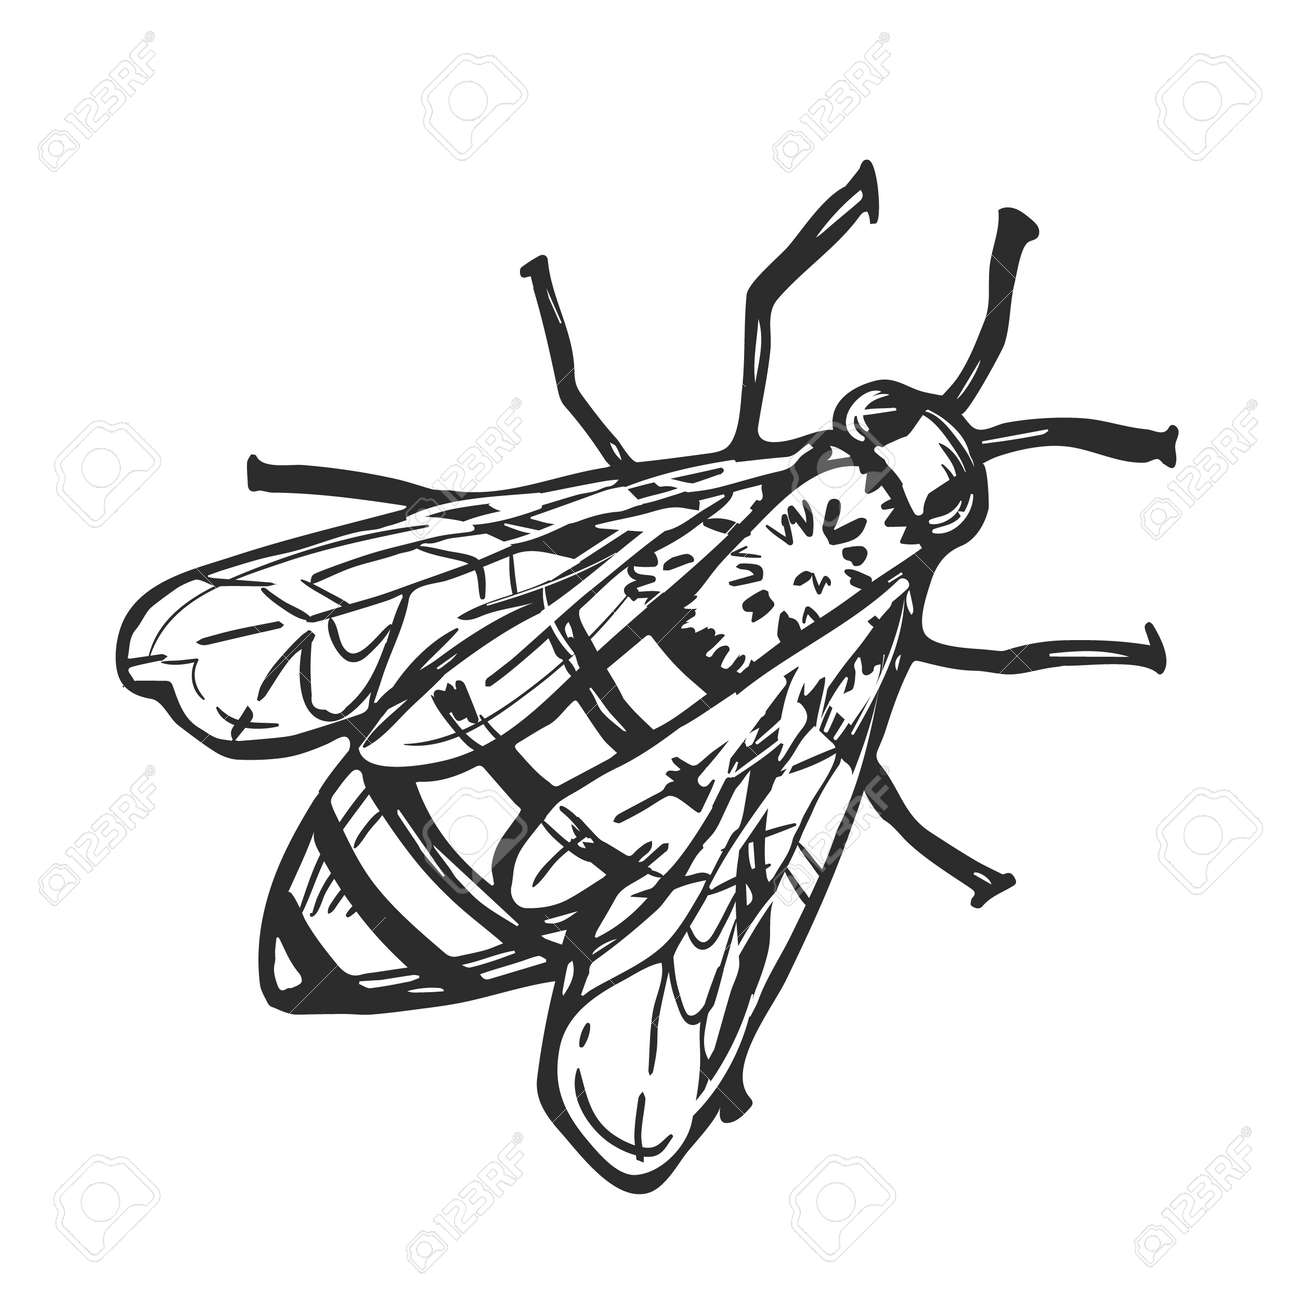 Honey bee freehand pencil drawing isolated on white background